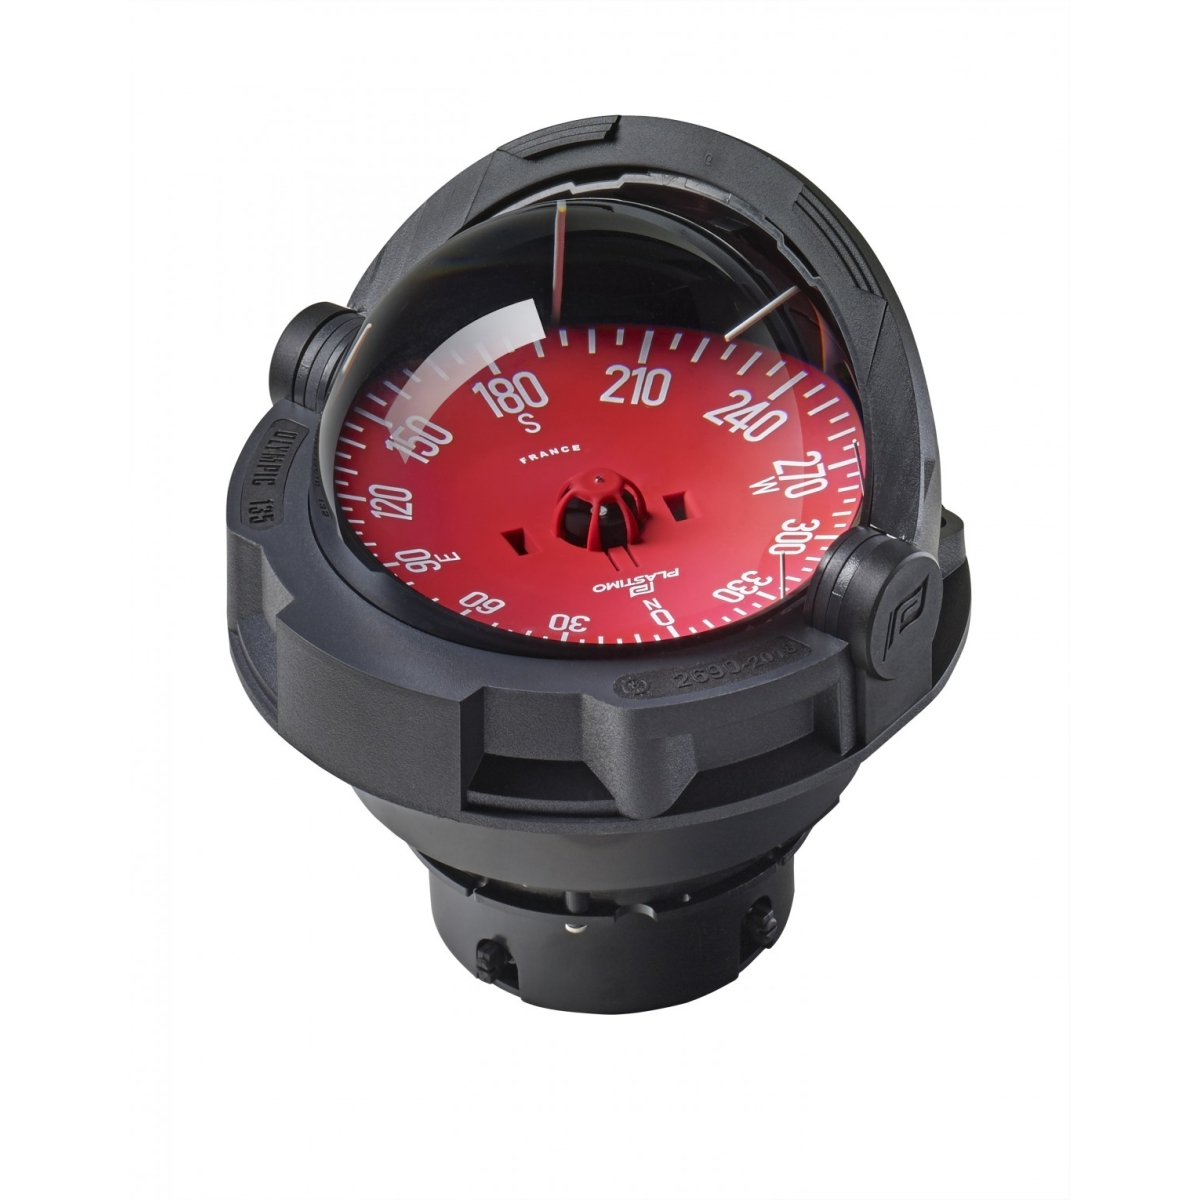 OLYMPIC 135 COMPASS